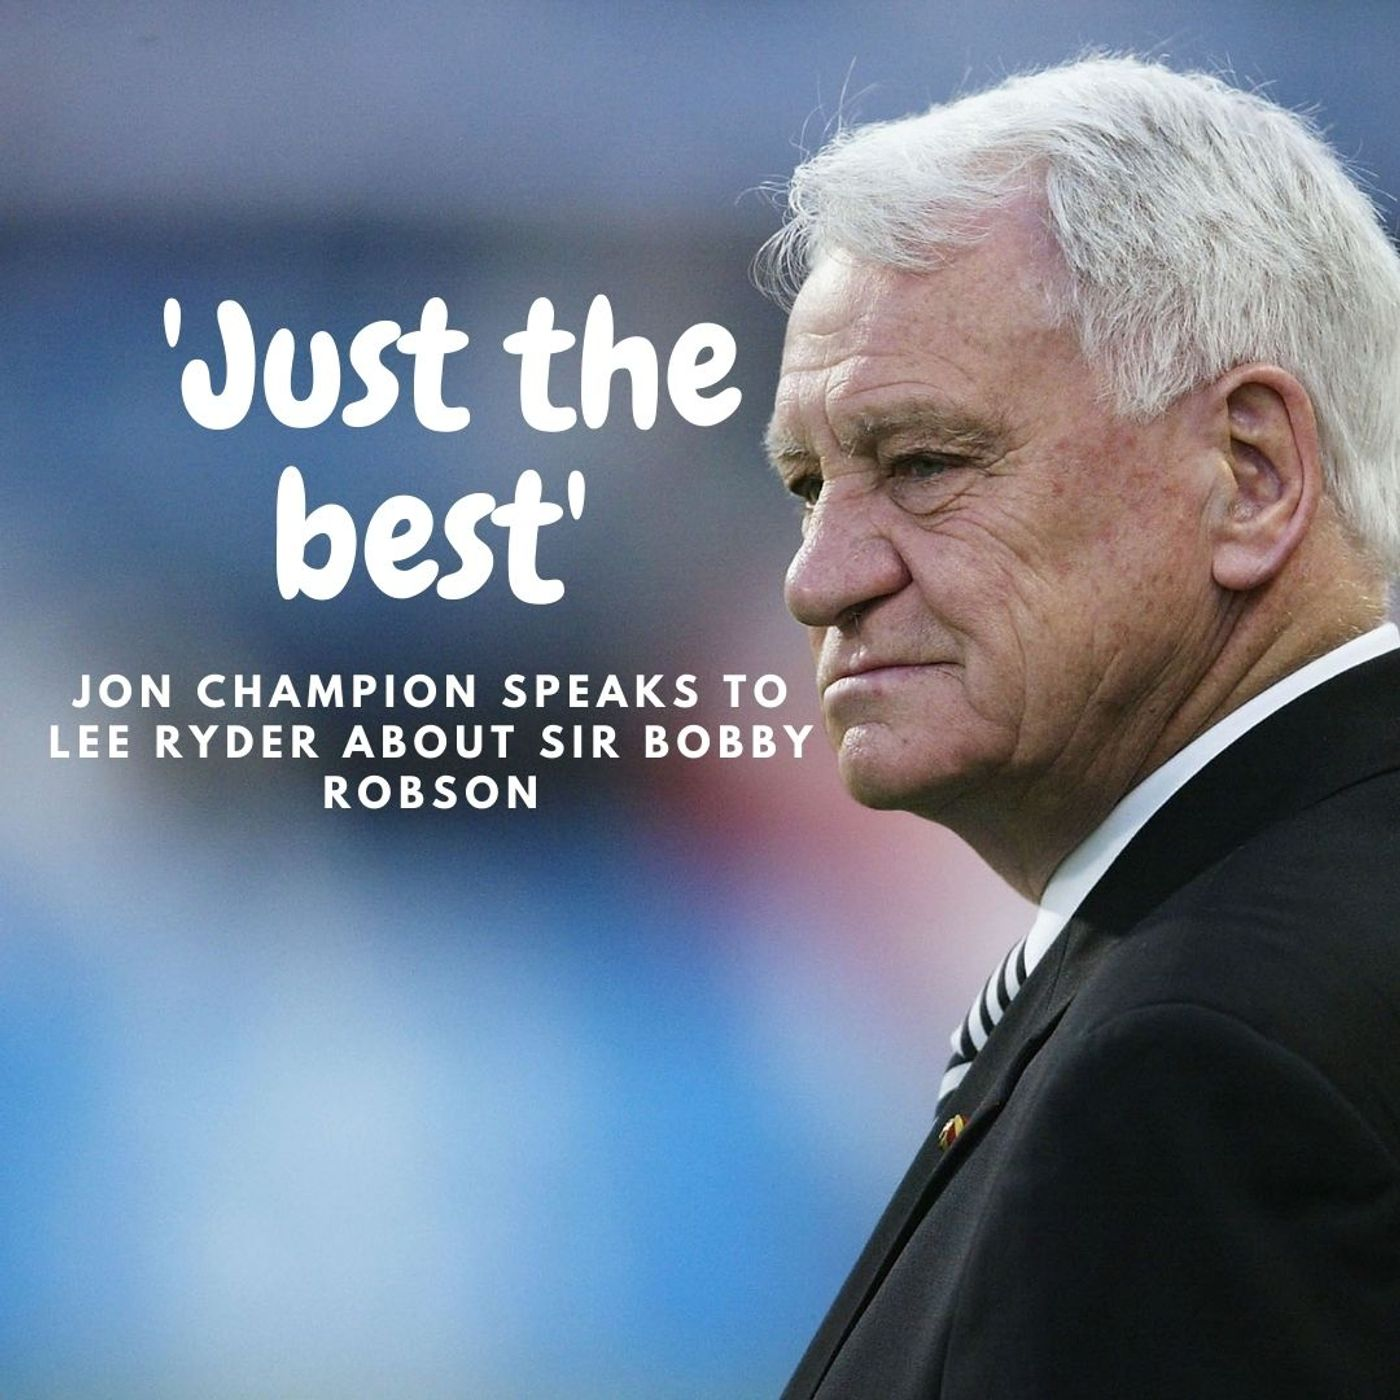 'Just the best' - Jon Champion speaks to Lee Ryder about Sir Bobby Robson